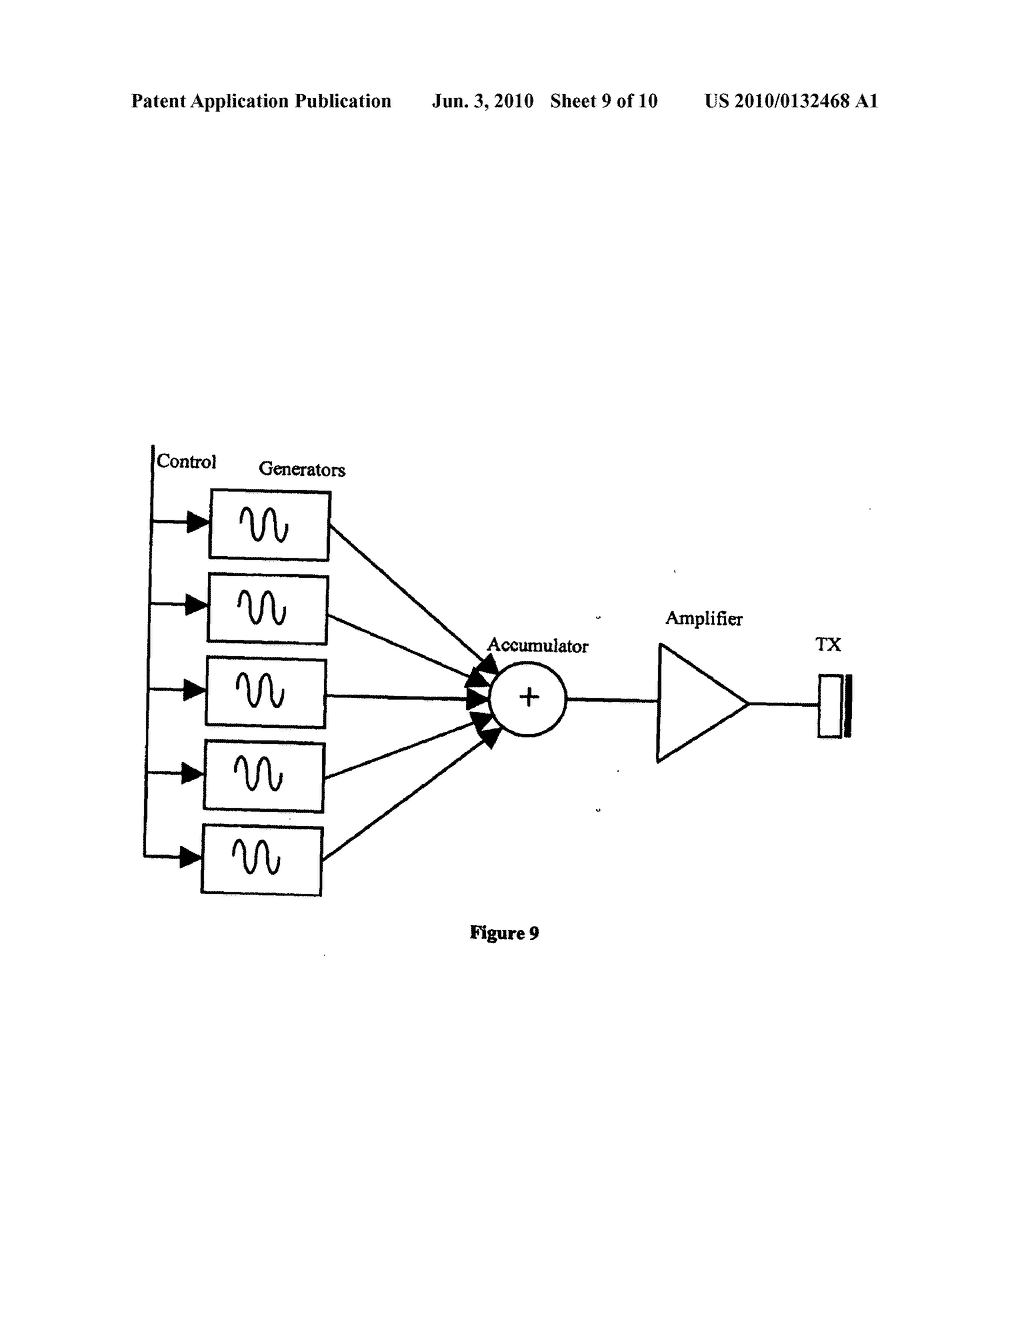 Timing Light Schematic Circuit Tree Wiring Diagrams Electronic Timer Circuits Schematics Diagram Classification Of Matter And Power Supply